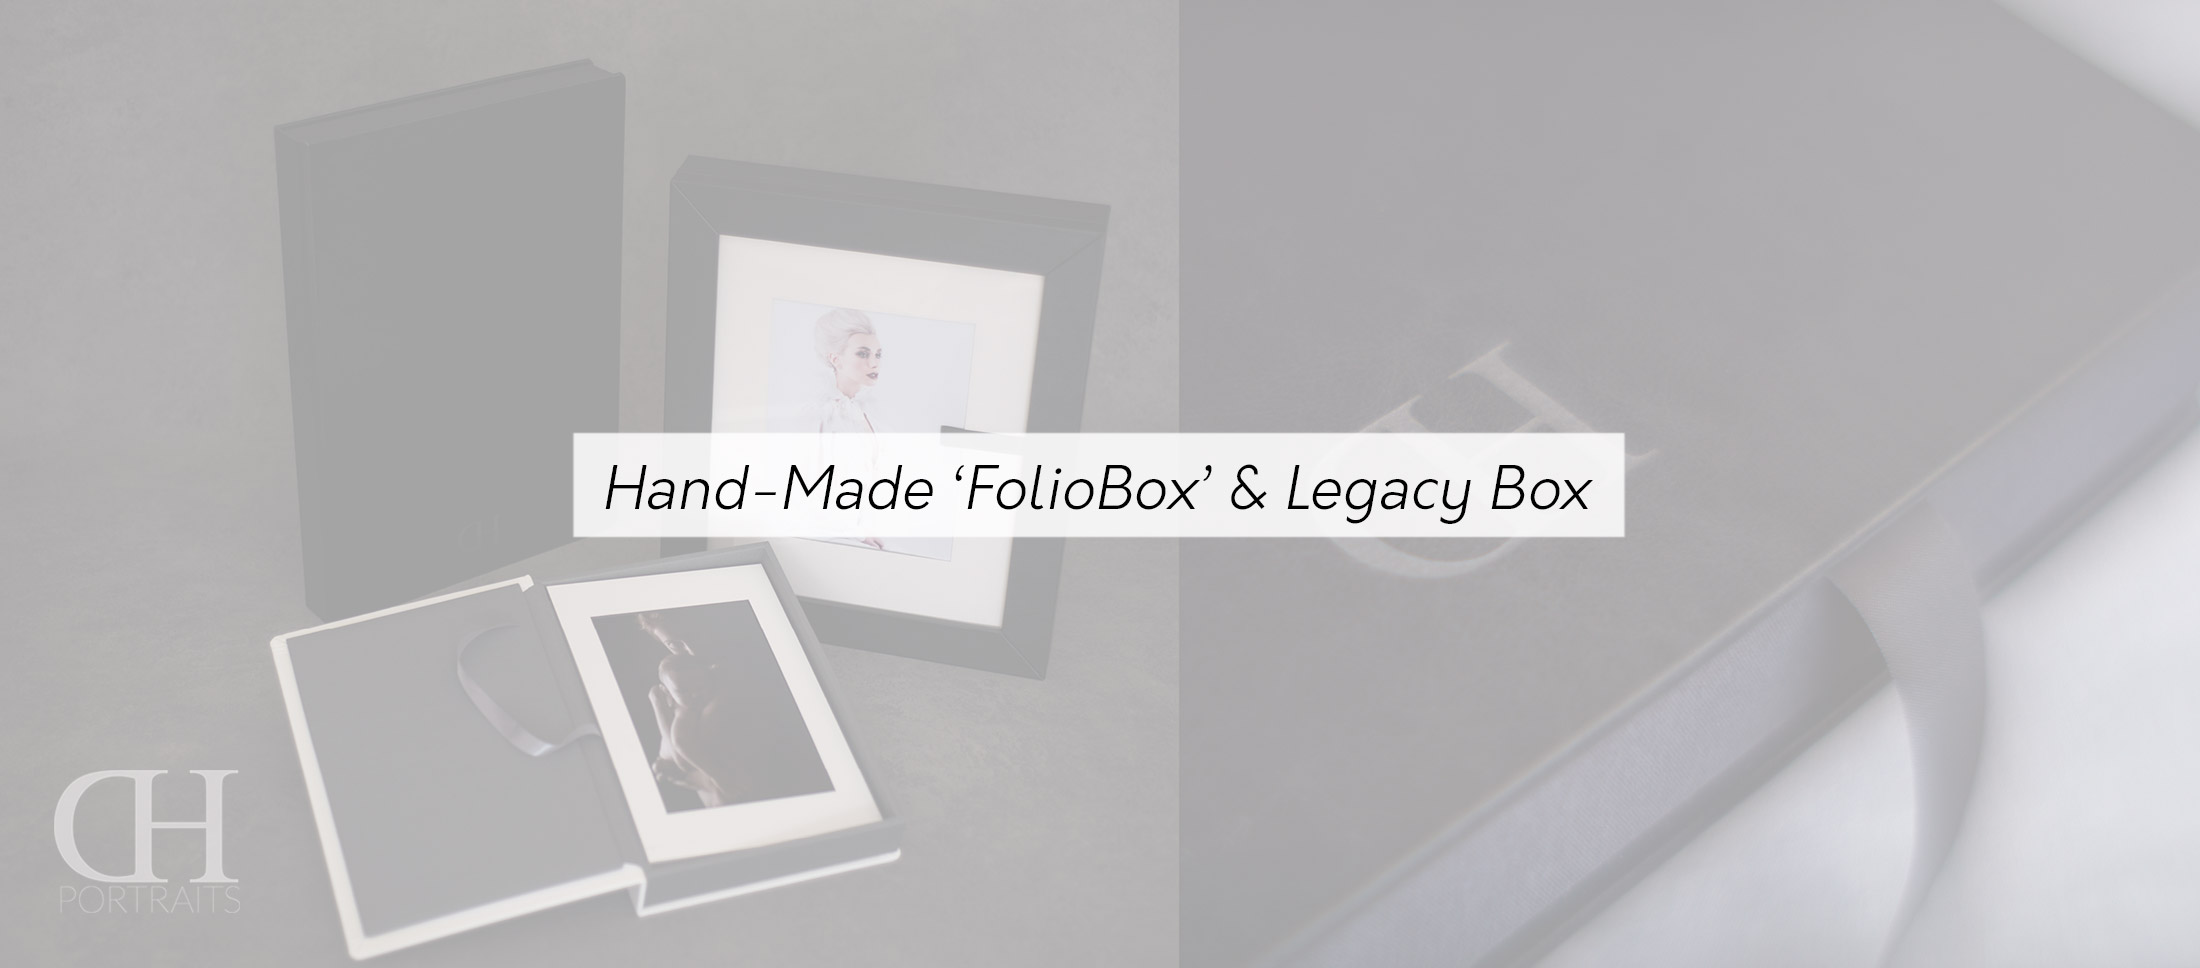 Folio-Boxes,-Legacy-Boxes---Exclusive-High-Class-Print-Products---Dan-Hostettler-Portraits-202002